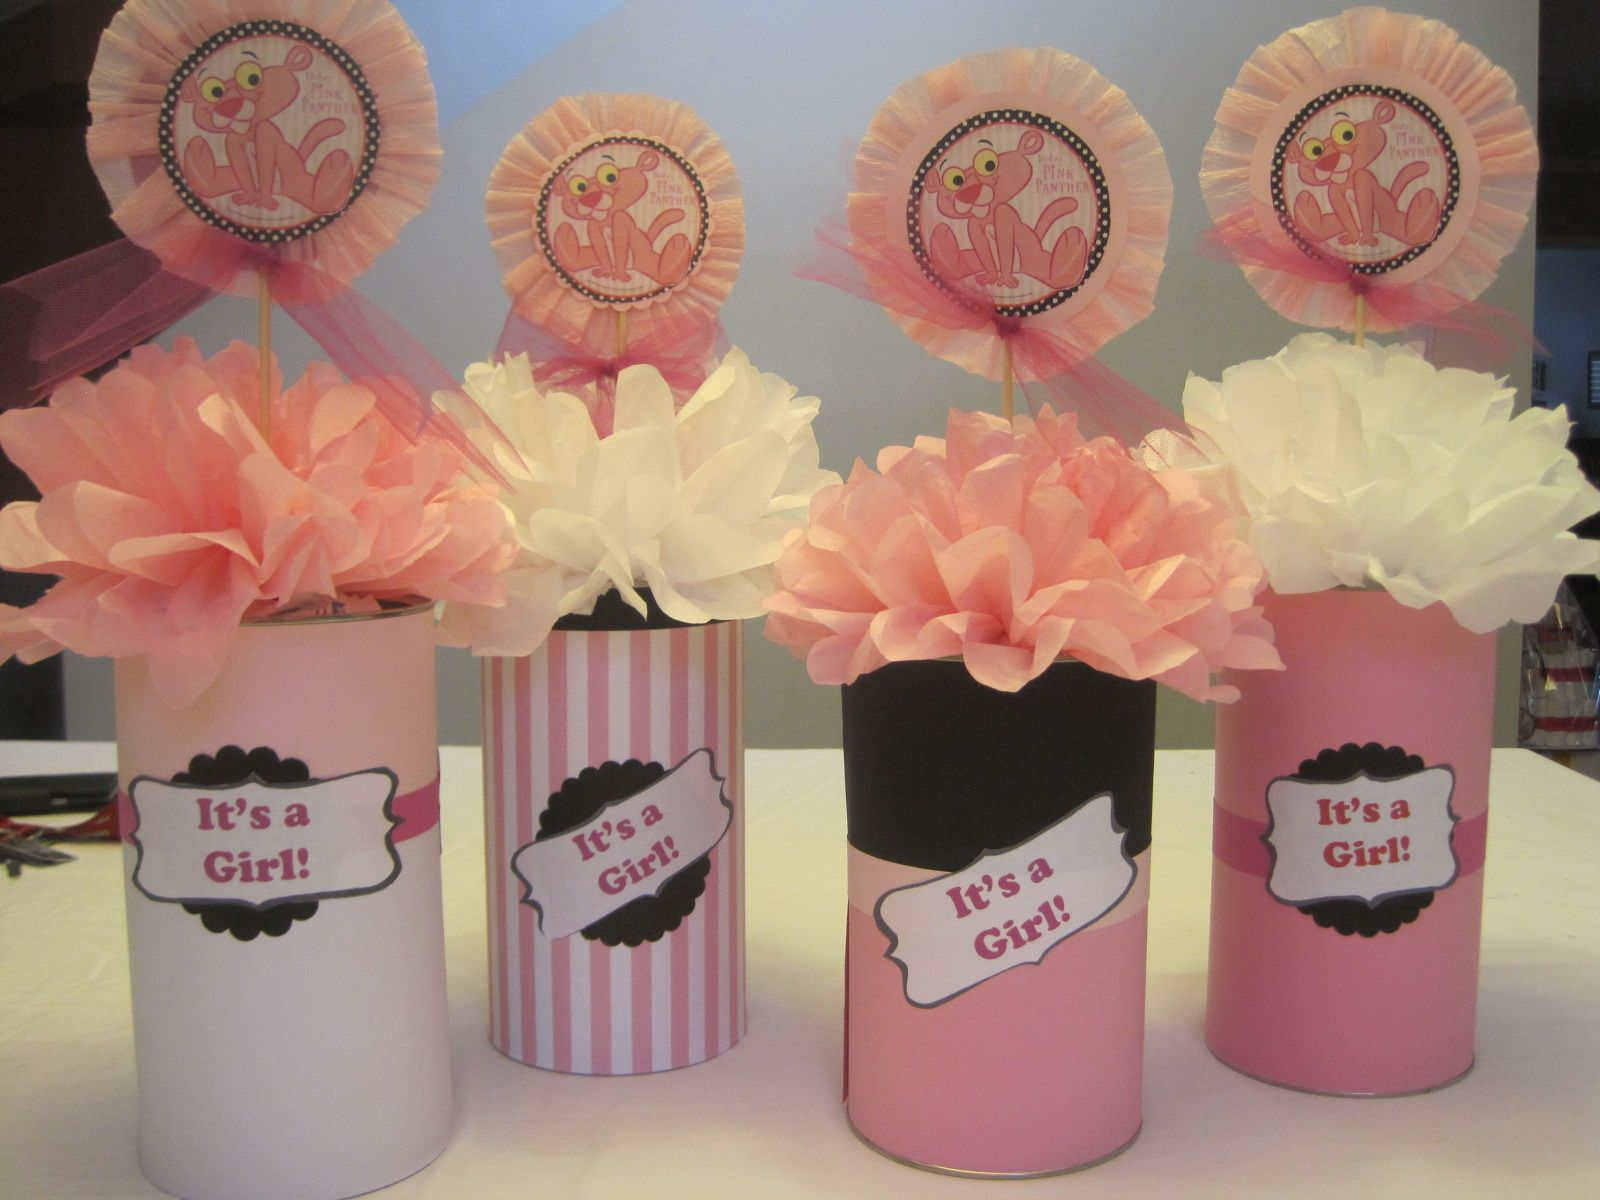 Pink Panther Matching Centerpieces Made From Empty Oatmeal Tubs